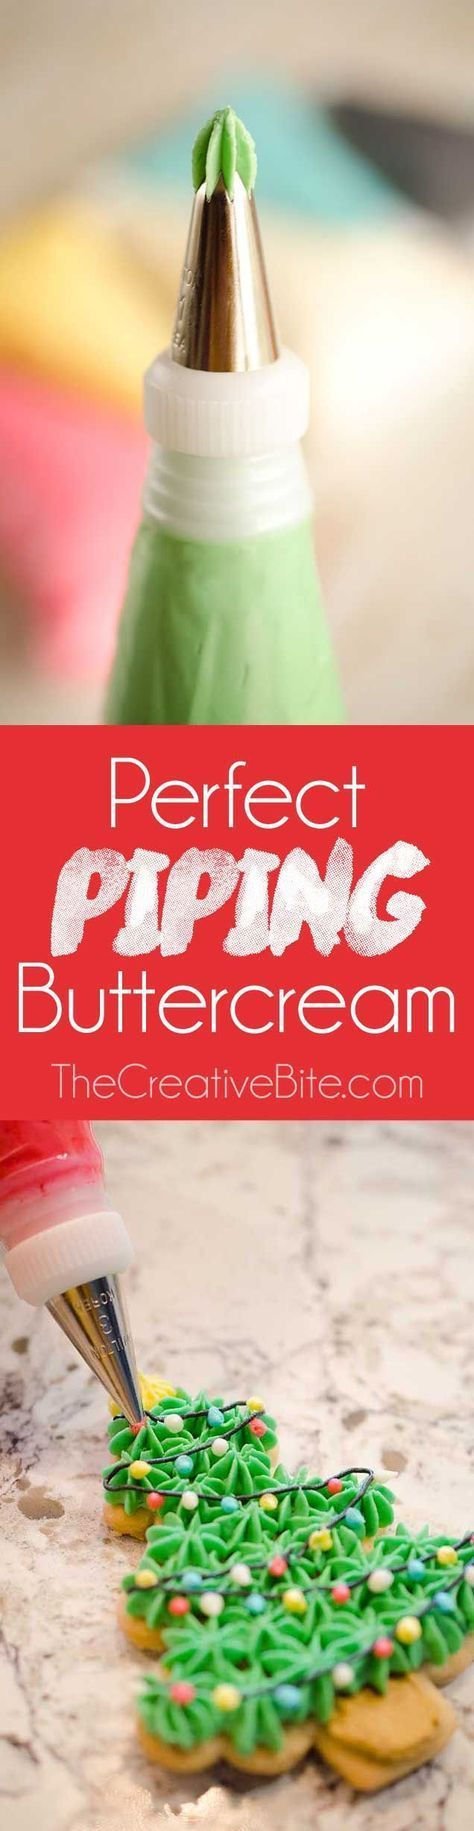 Best 25+ Buttercream Designs ideas on Pinterest